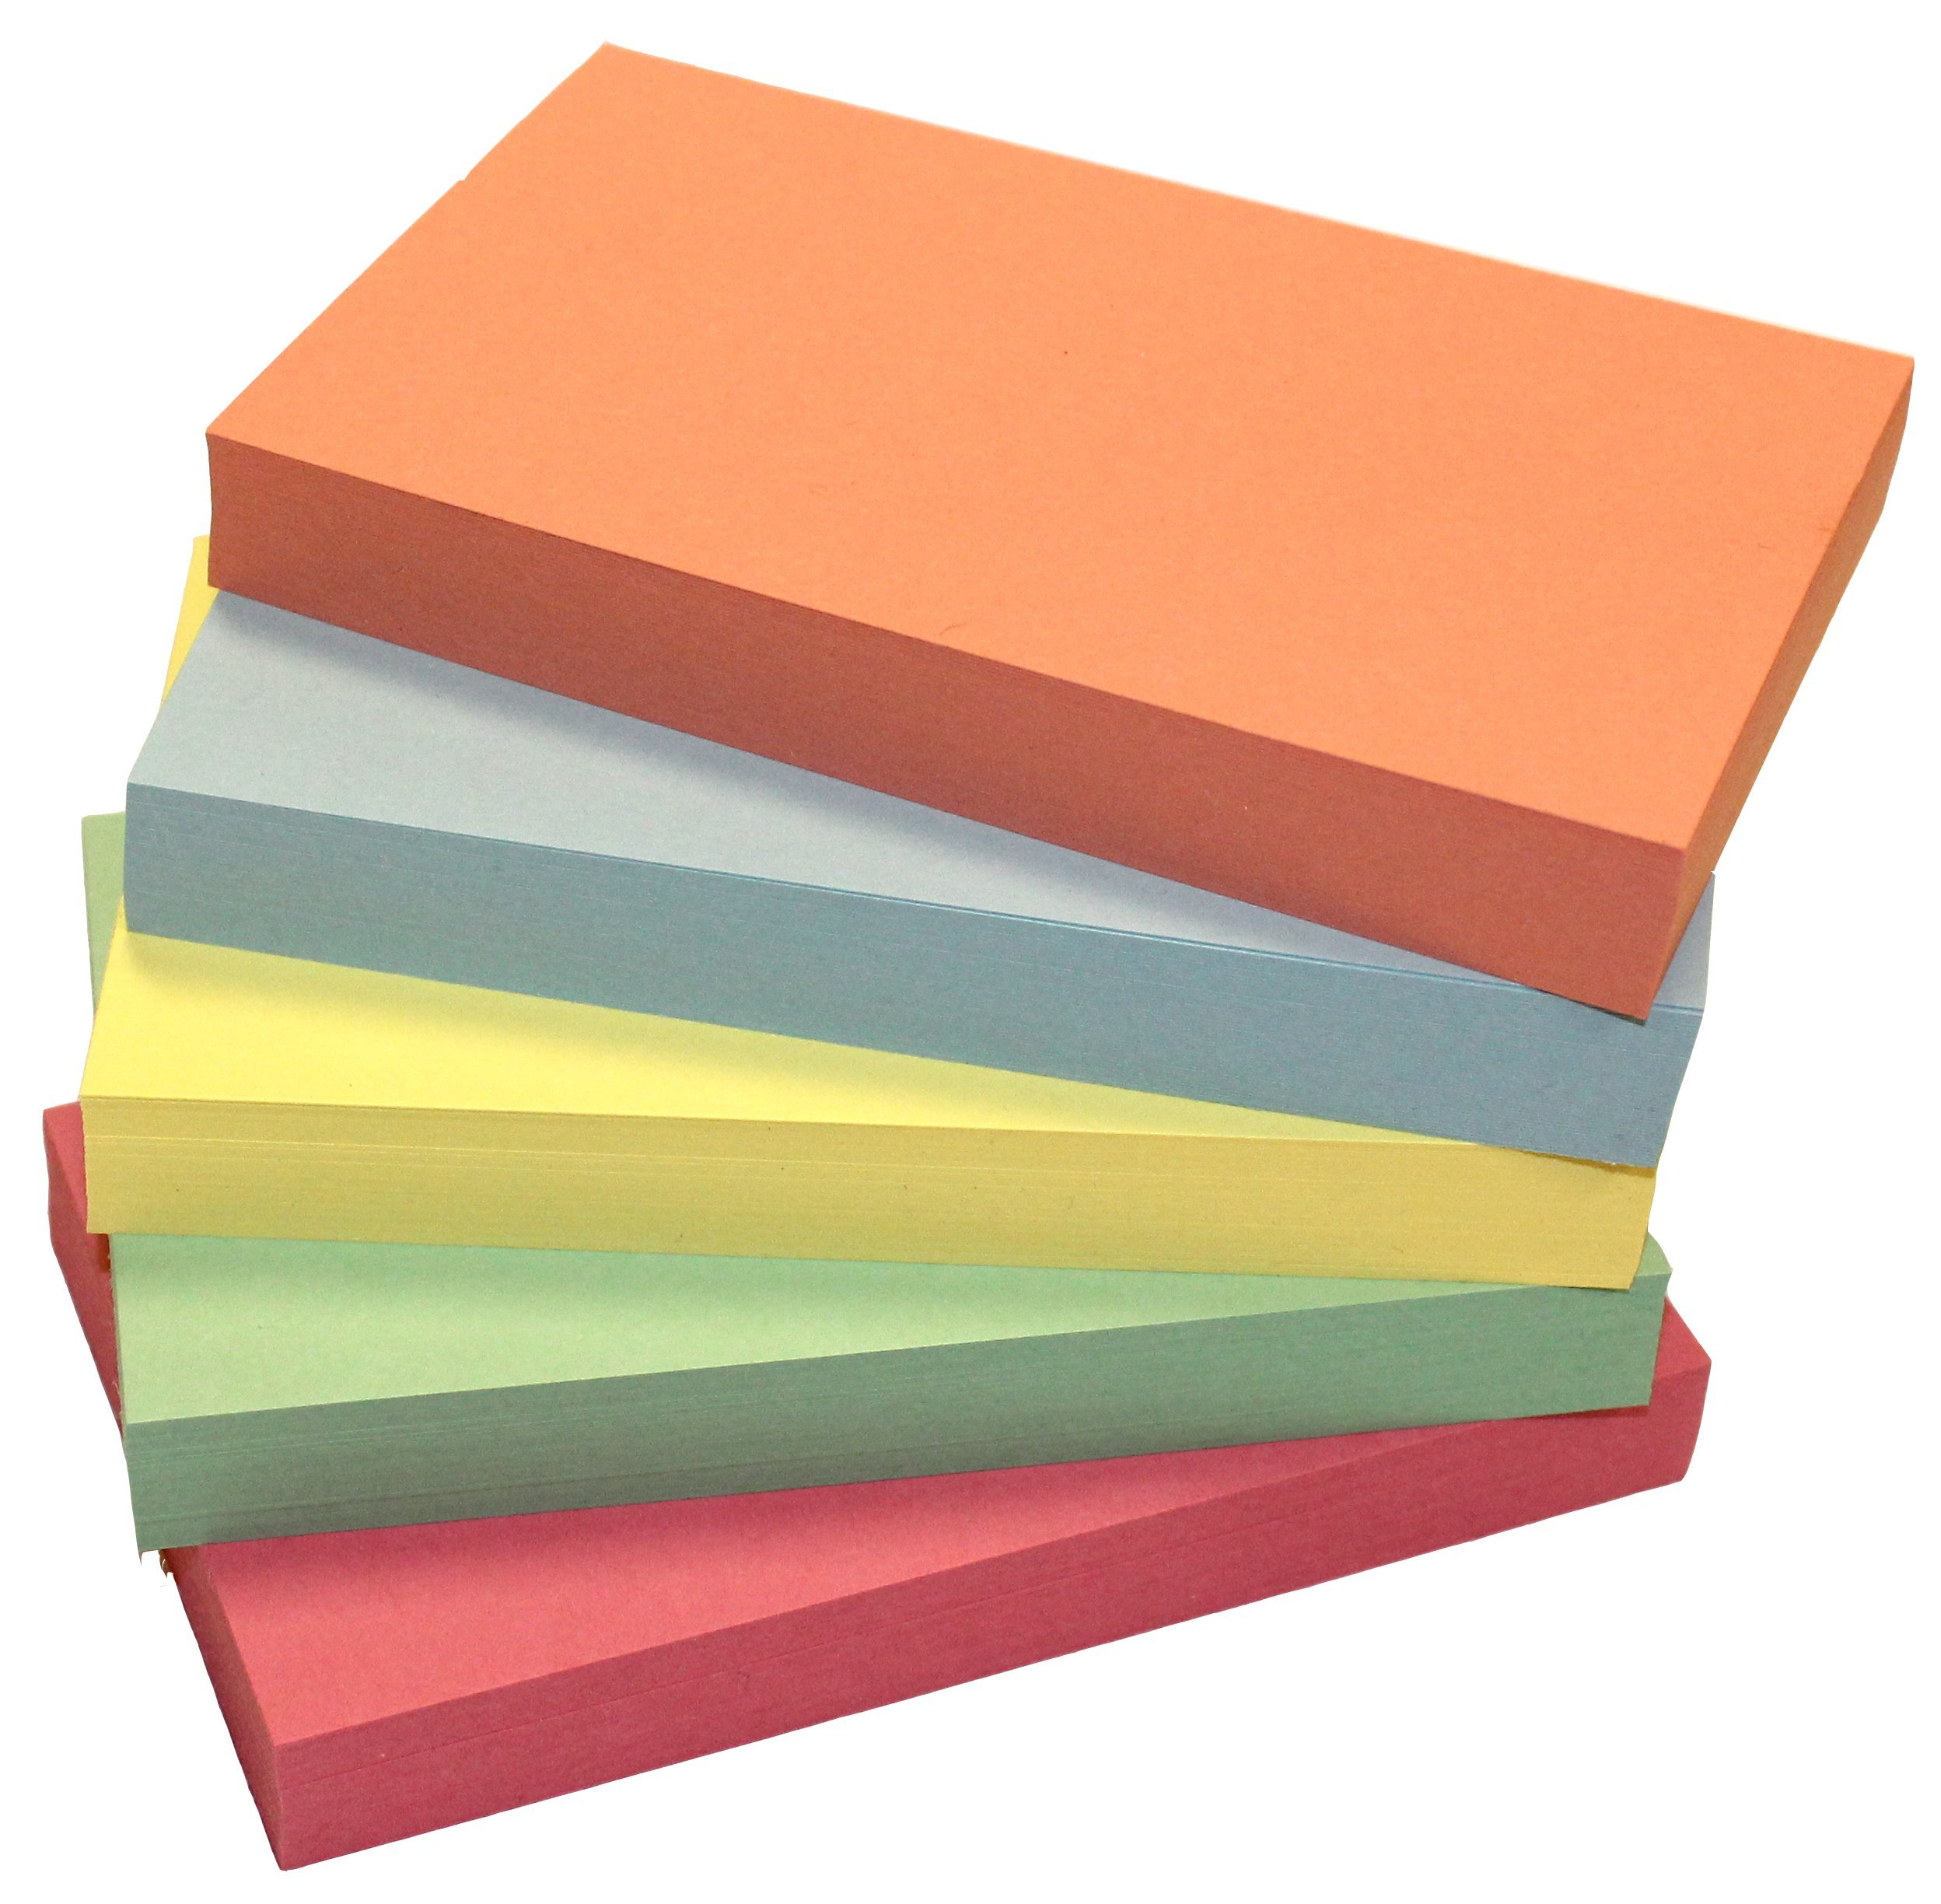 Debra Dale Designs 250 Blank Index Cards - 3'' x 5'' - 140# Heavy Index Card Stock - 5 Colors - 50 Cards Each Color by DEBRADALE DESIGNS